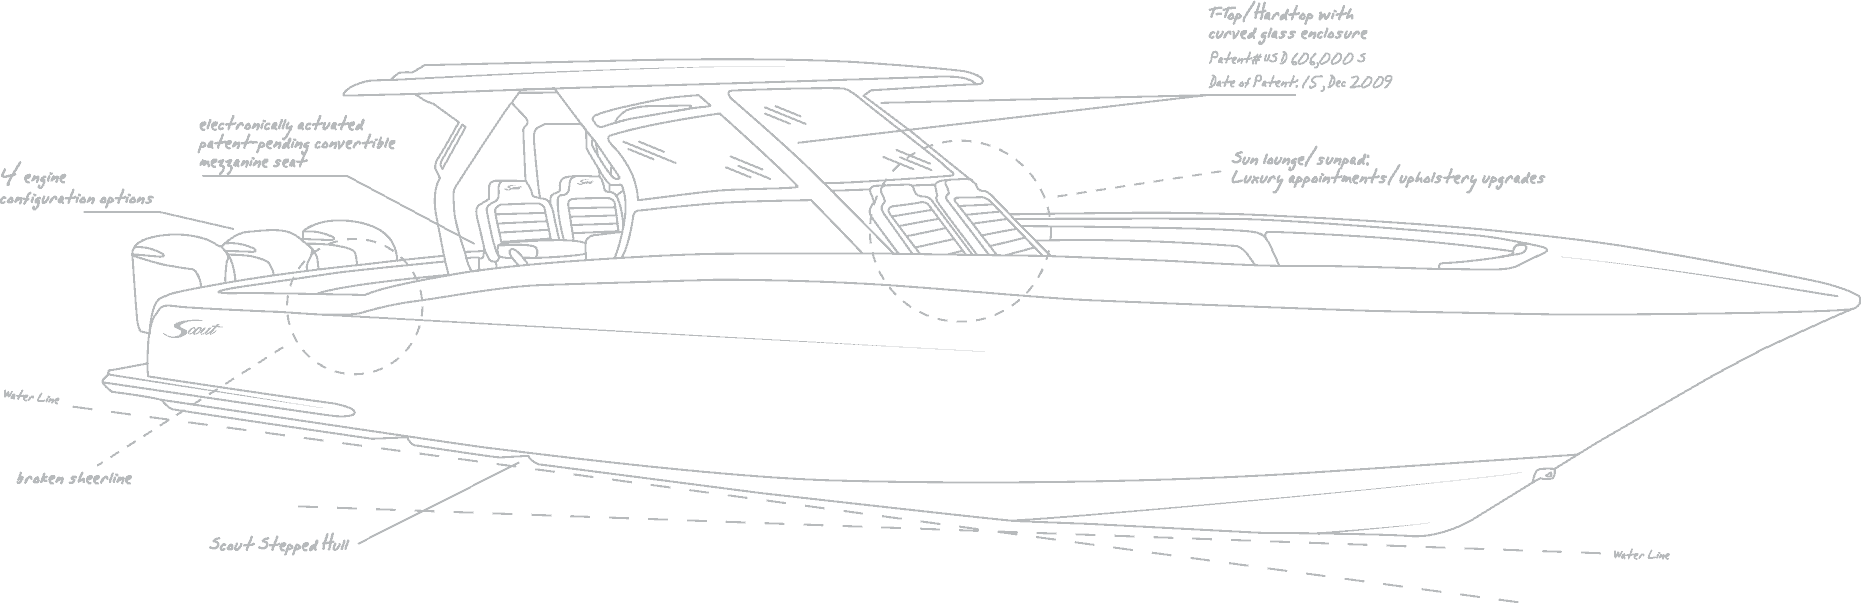 530 LXF Scout Line Drawing